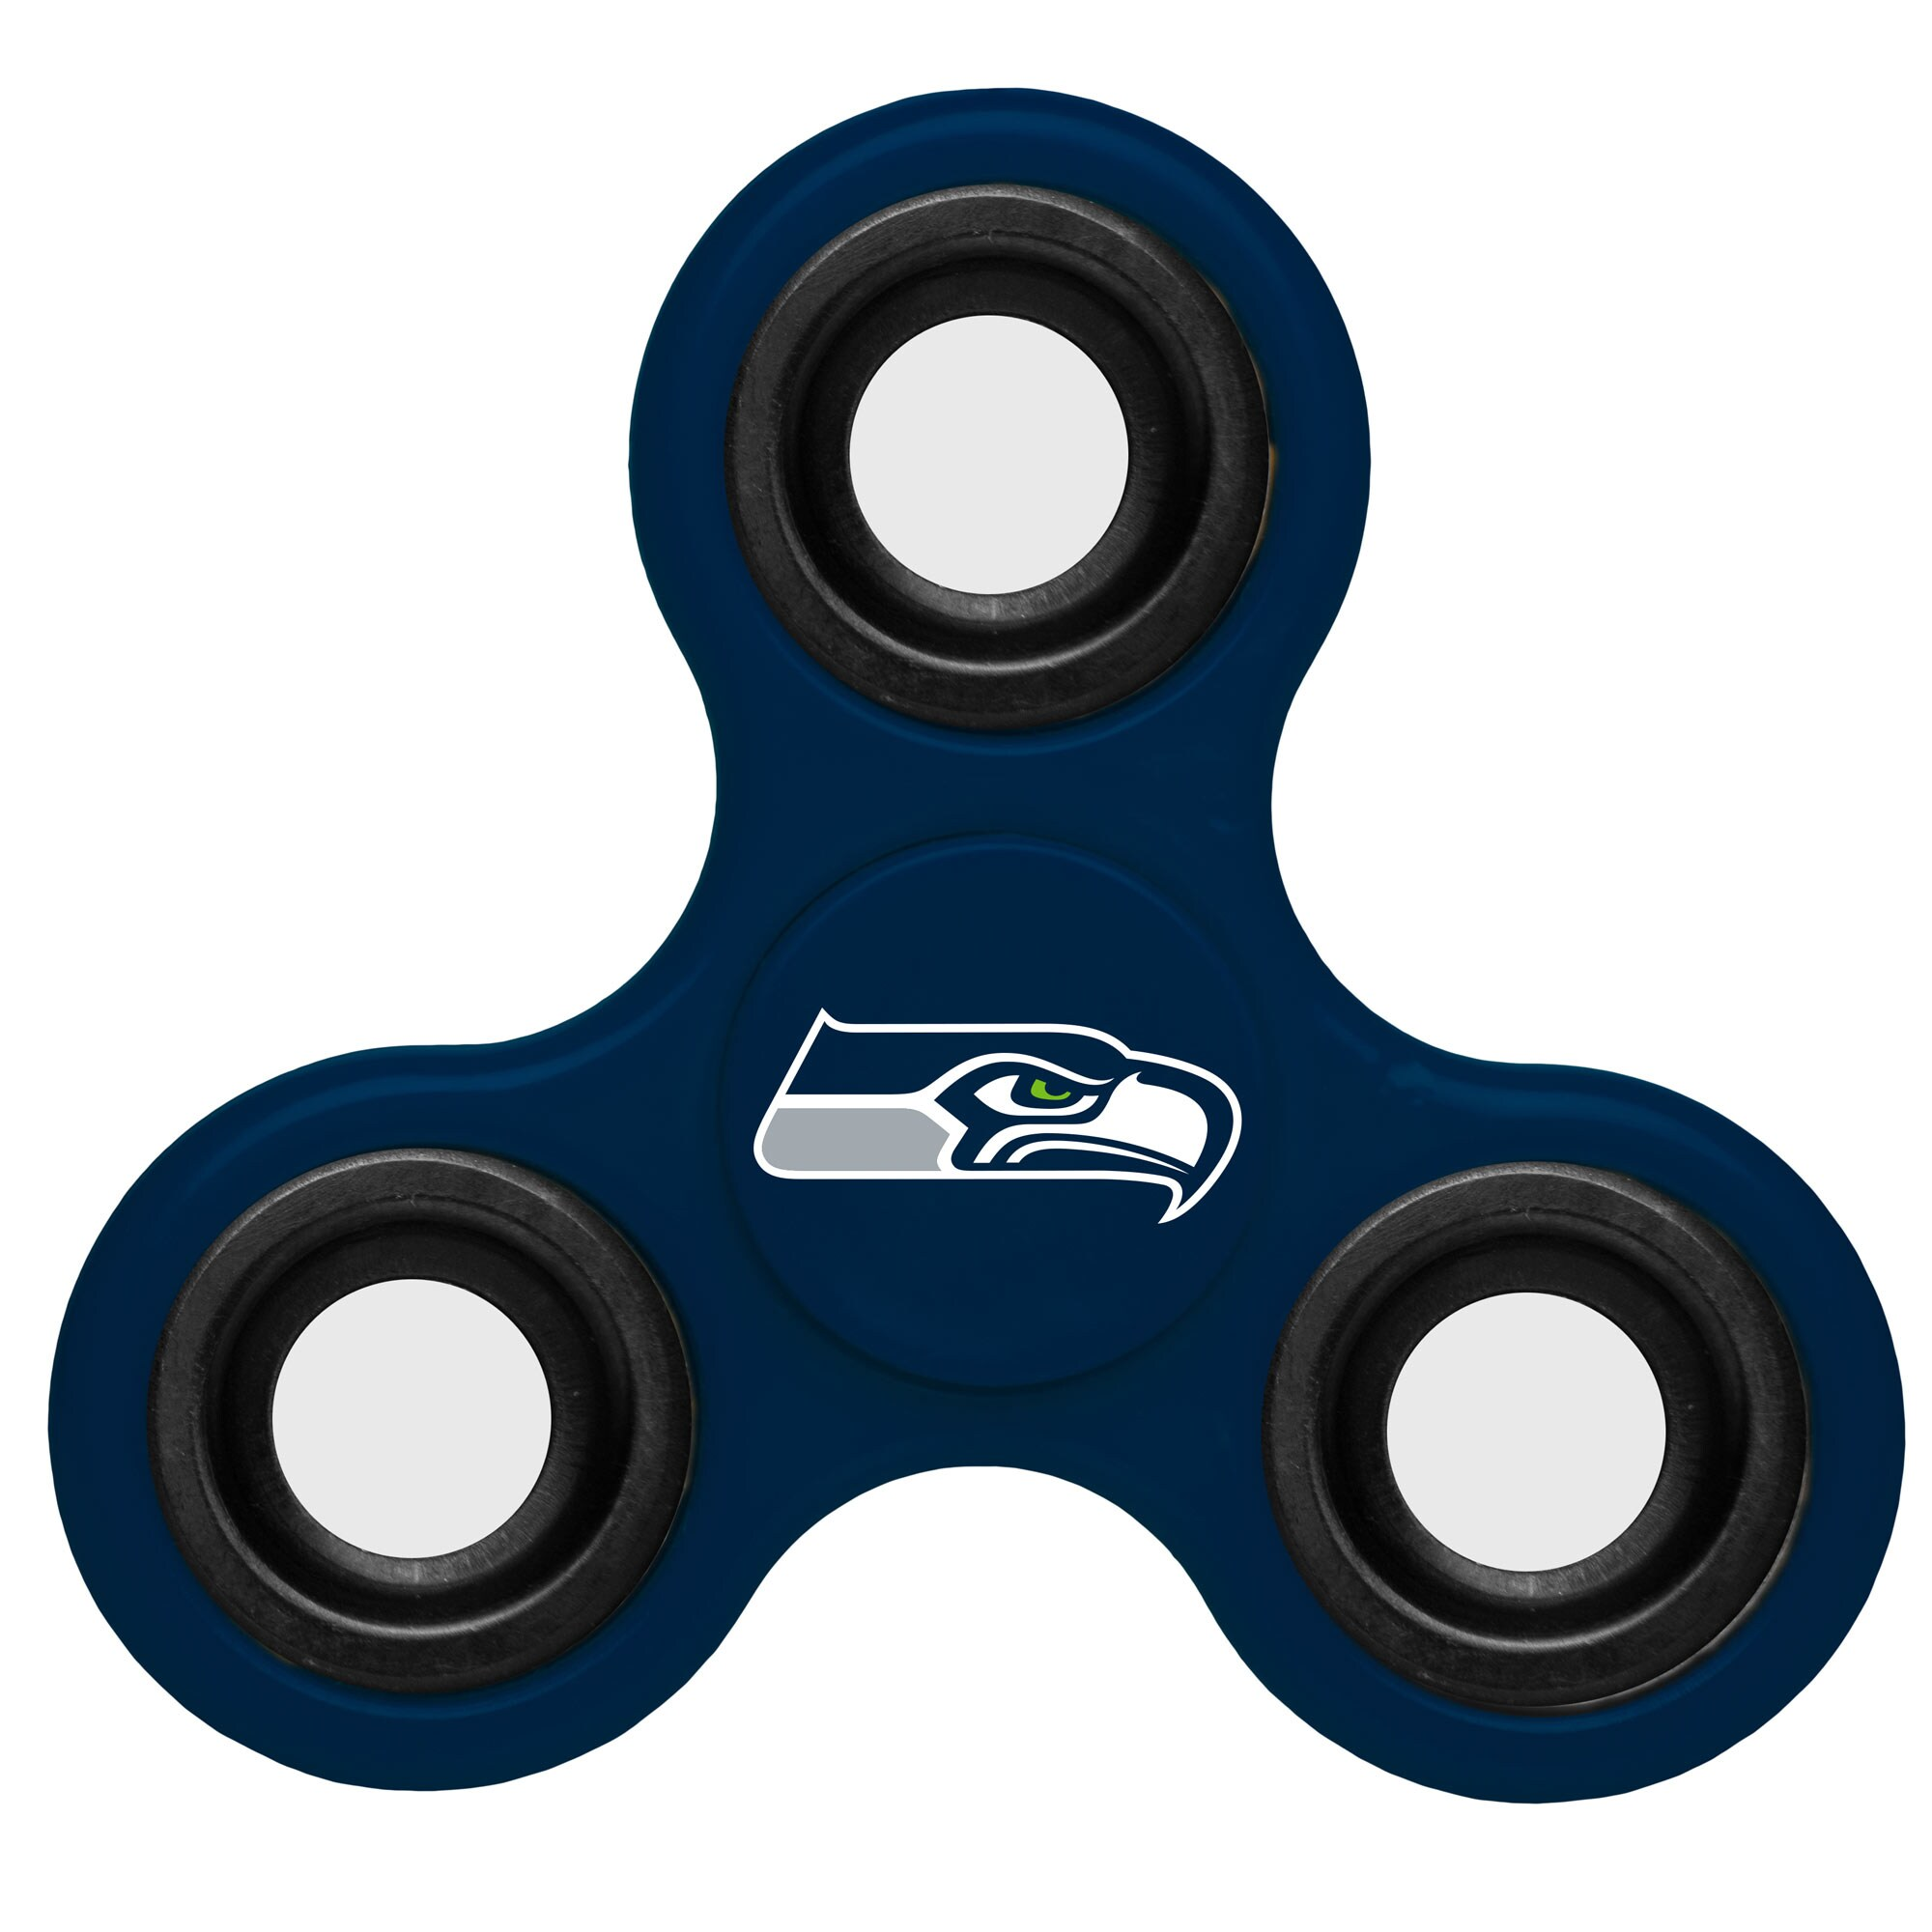 Seattle Seahawks 3-Way Fidget Spinner